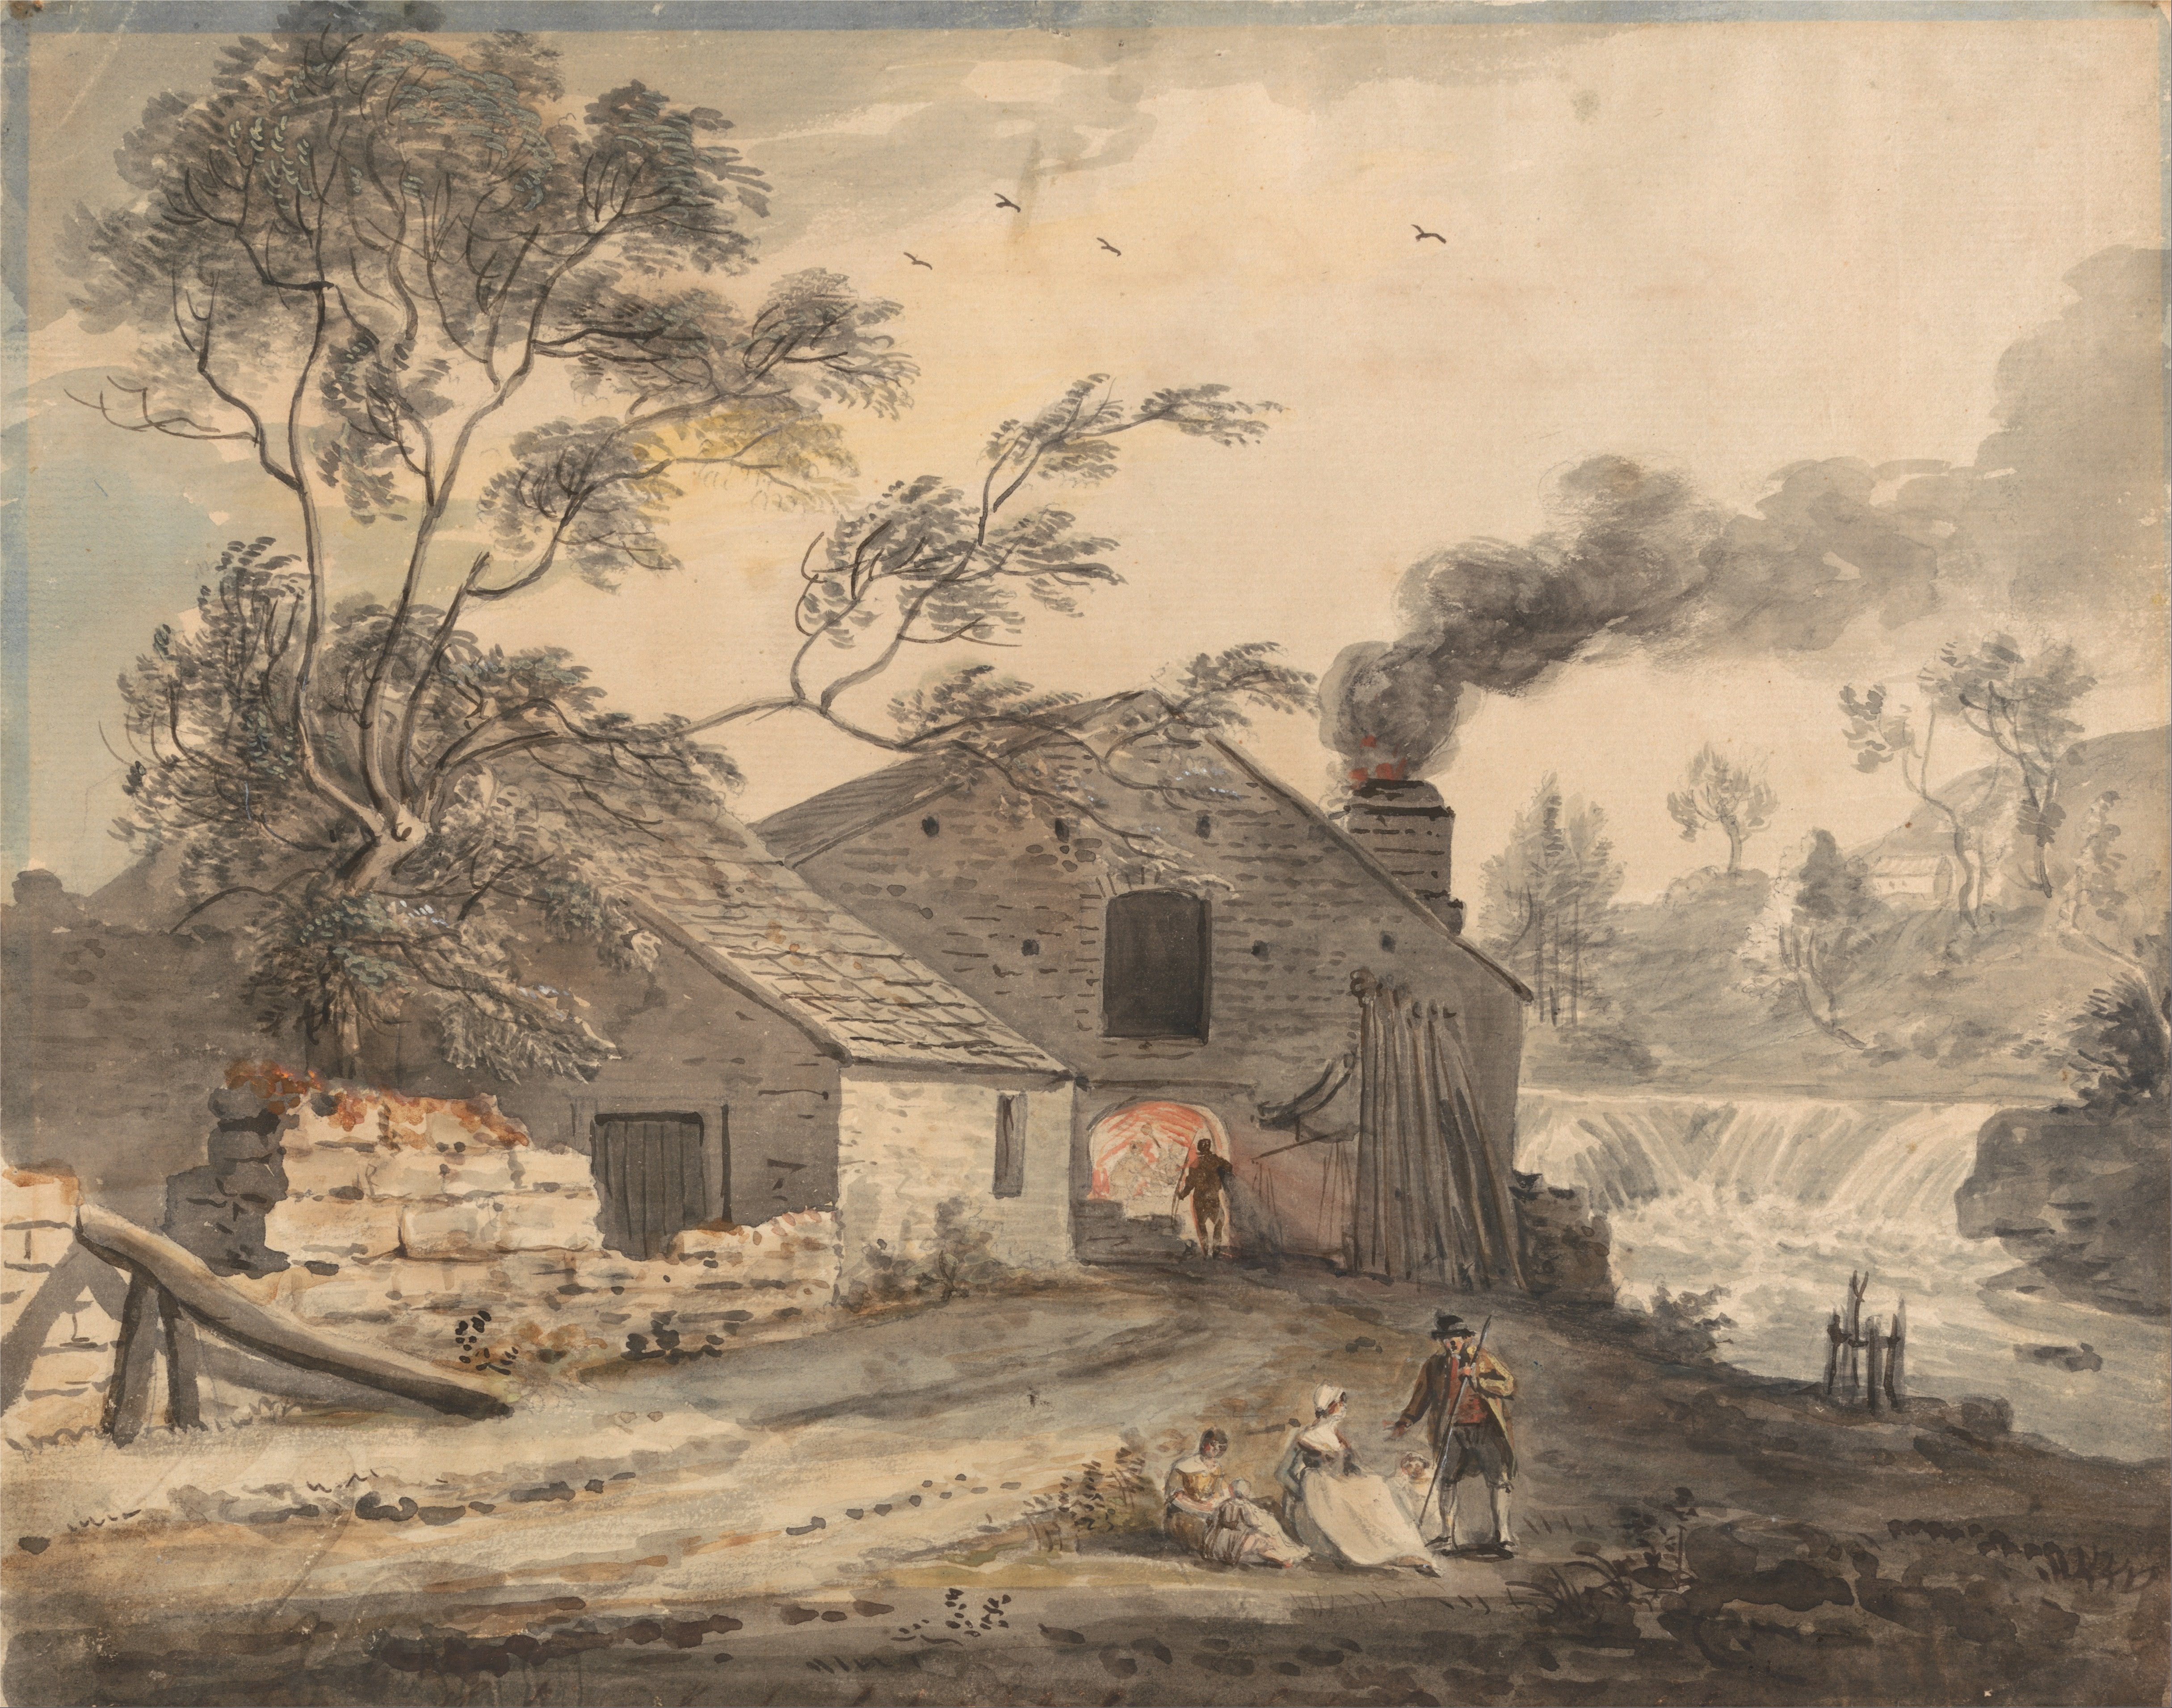 File:Paul Sandby   Iron Forge On The River Kent, Westmorland   Google Art